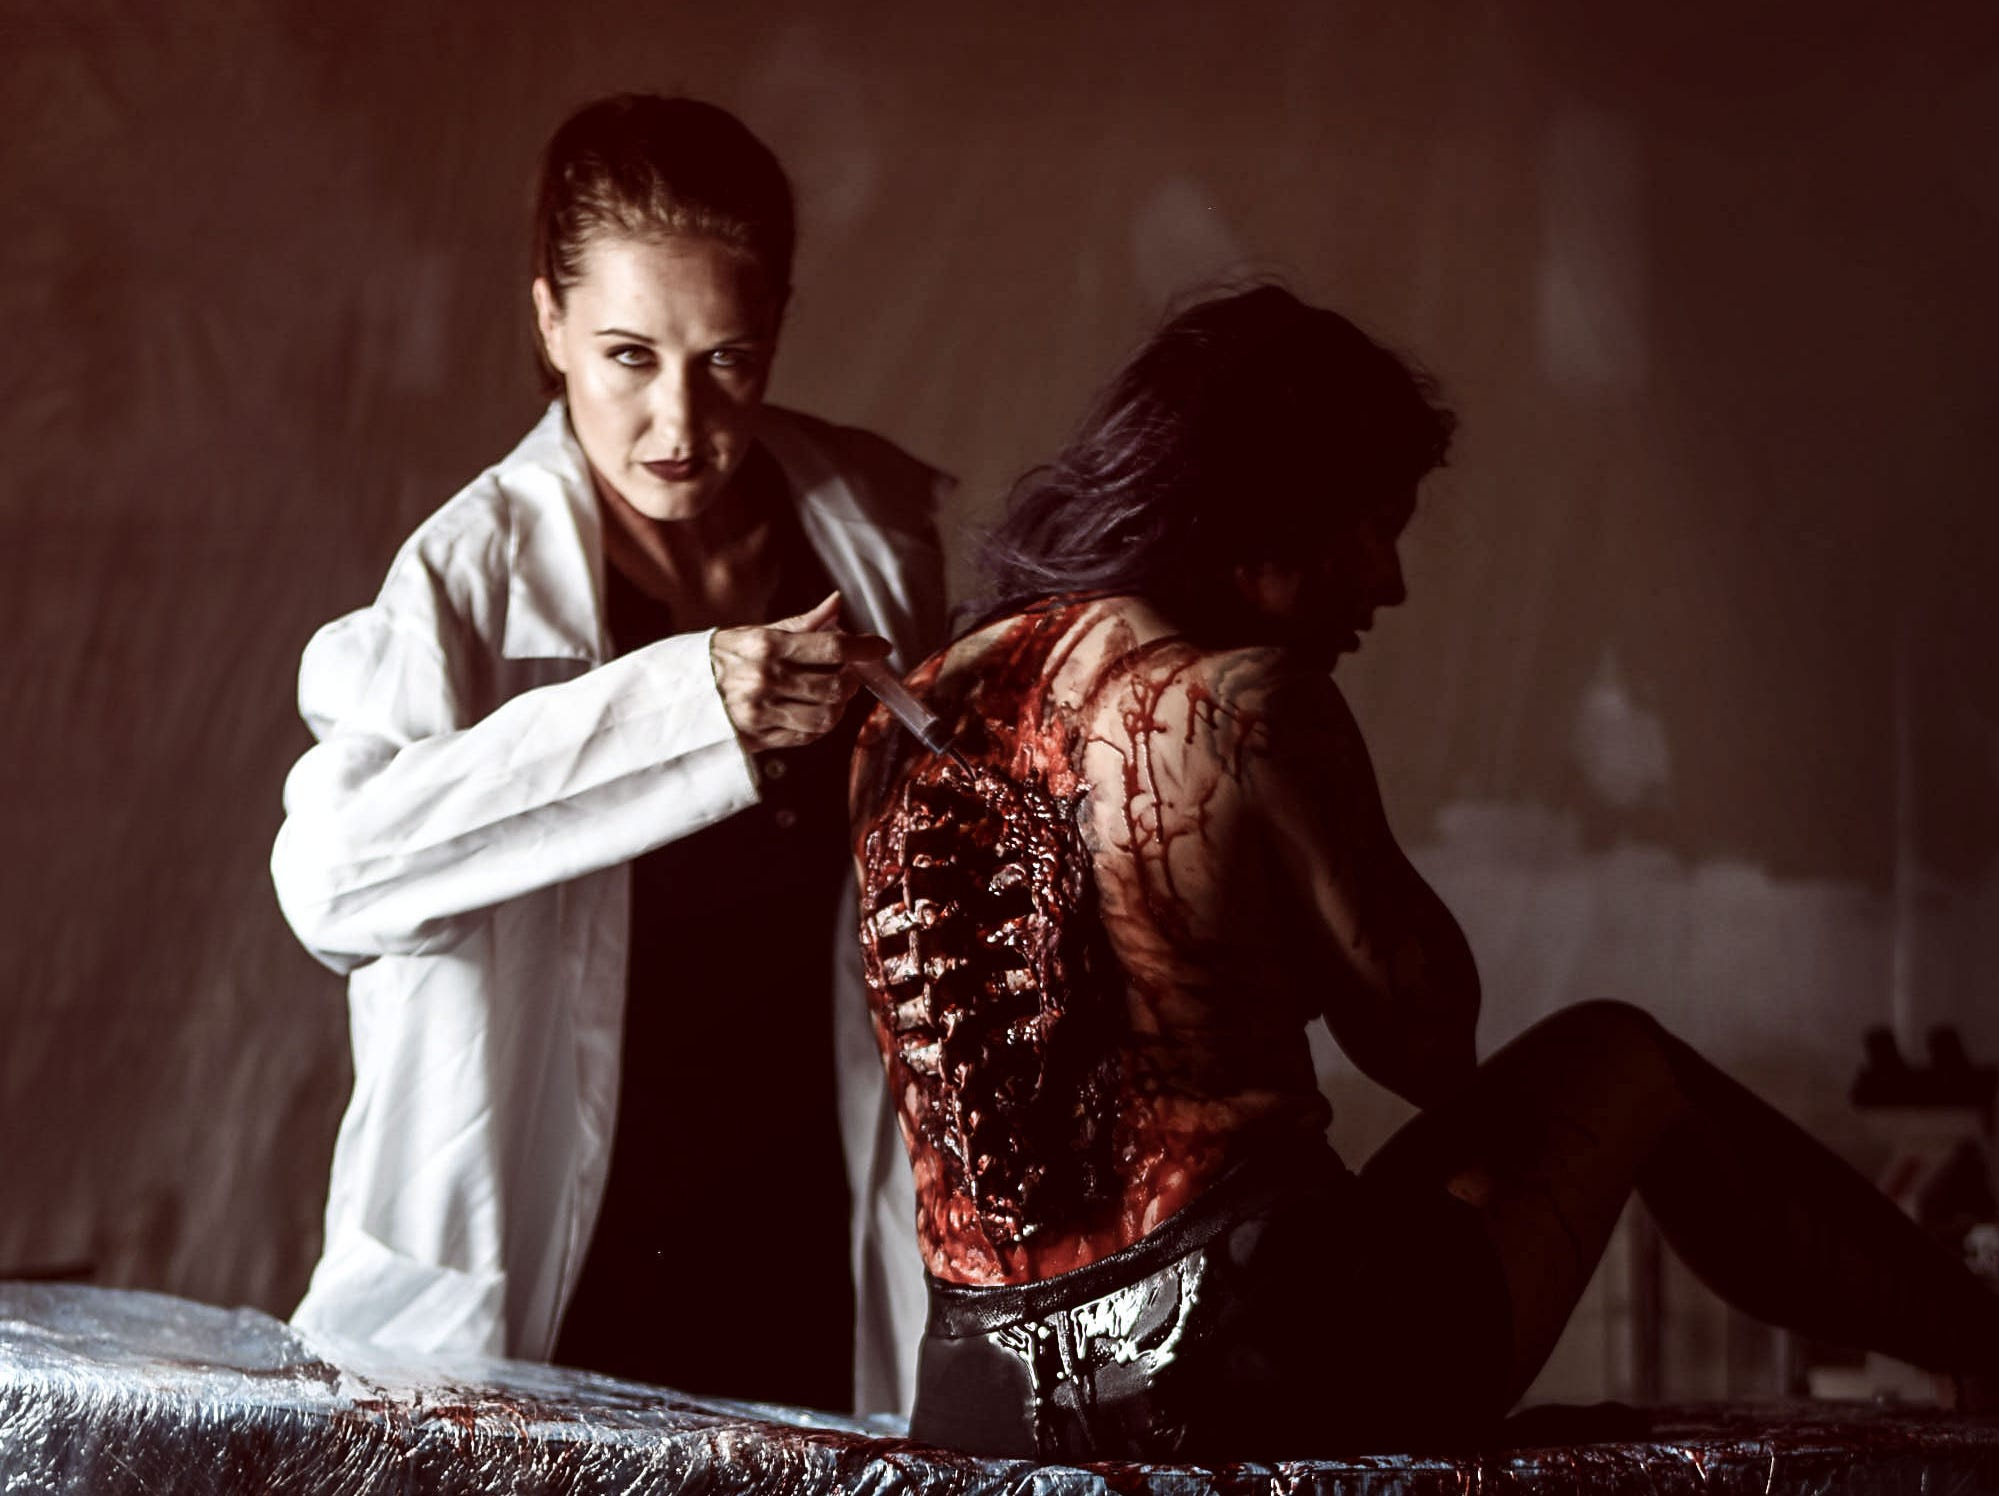 Lori Cannon portrays a mad physician with Leighann Word as the victim in this horror-themed photo session by Mallory Bertrand. Special effects by Ash Mac.